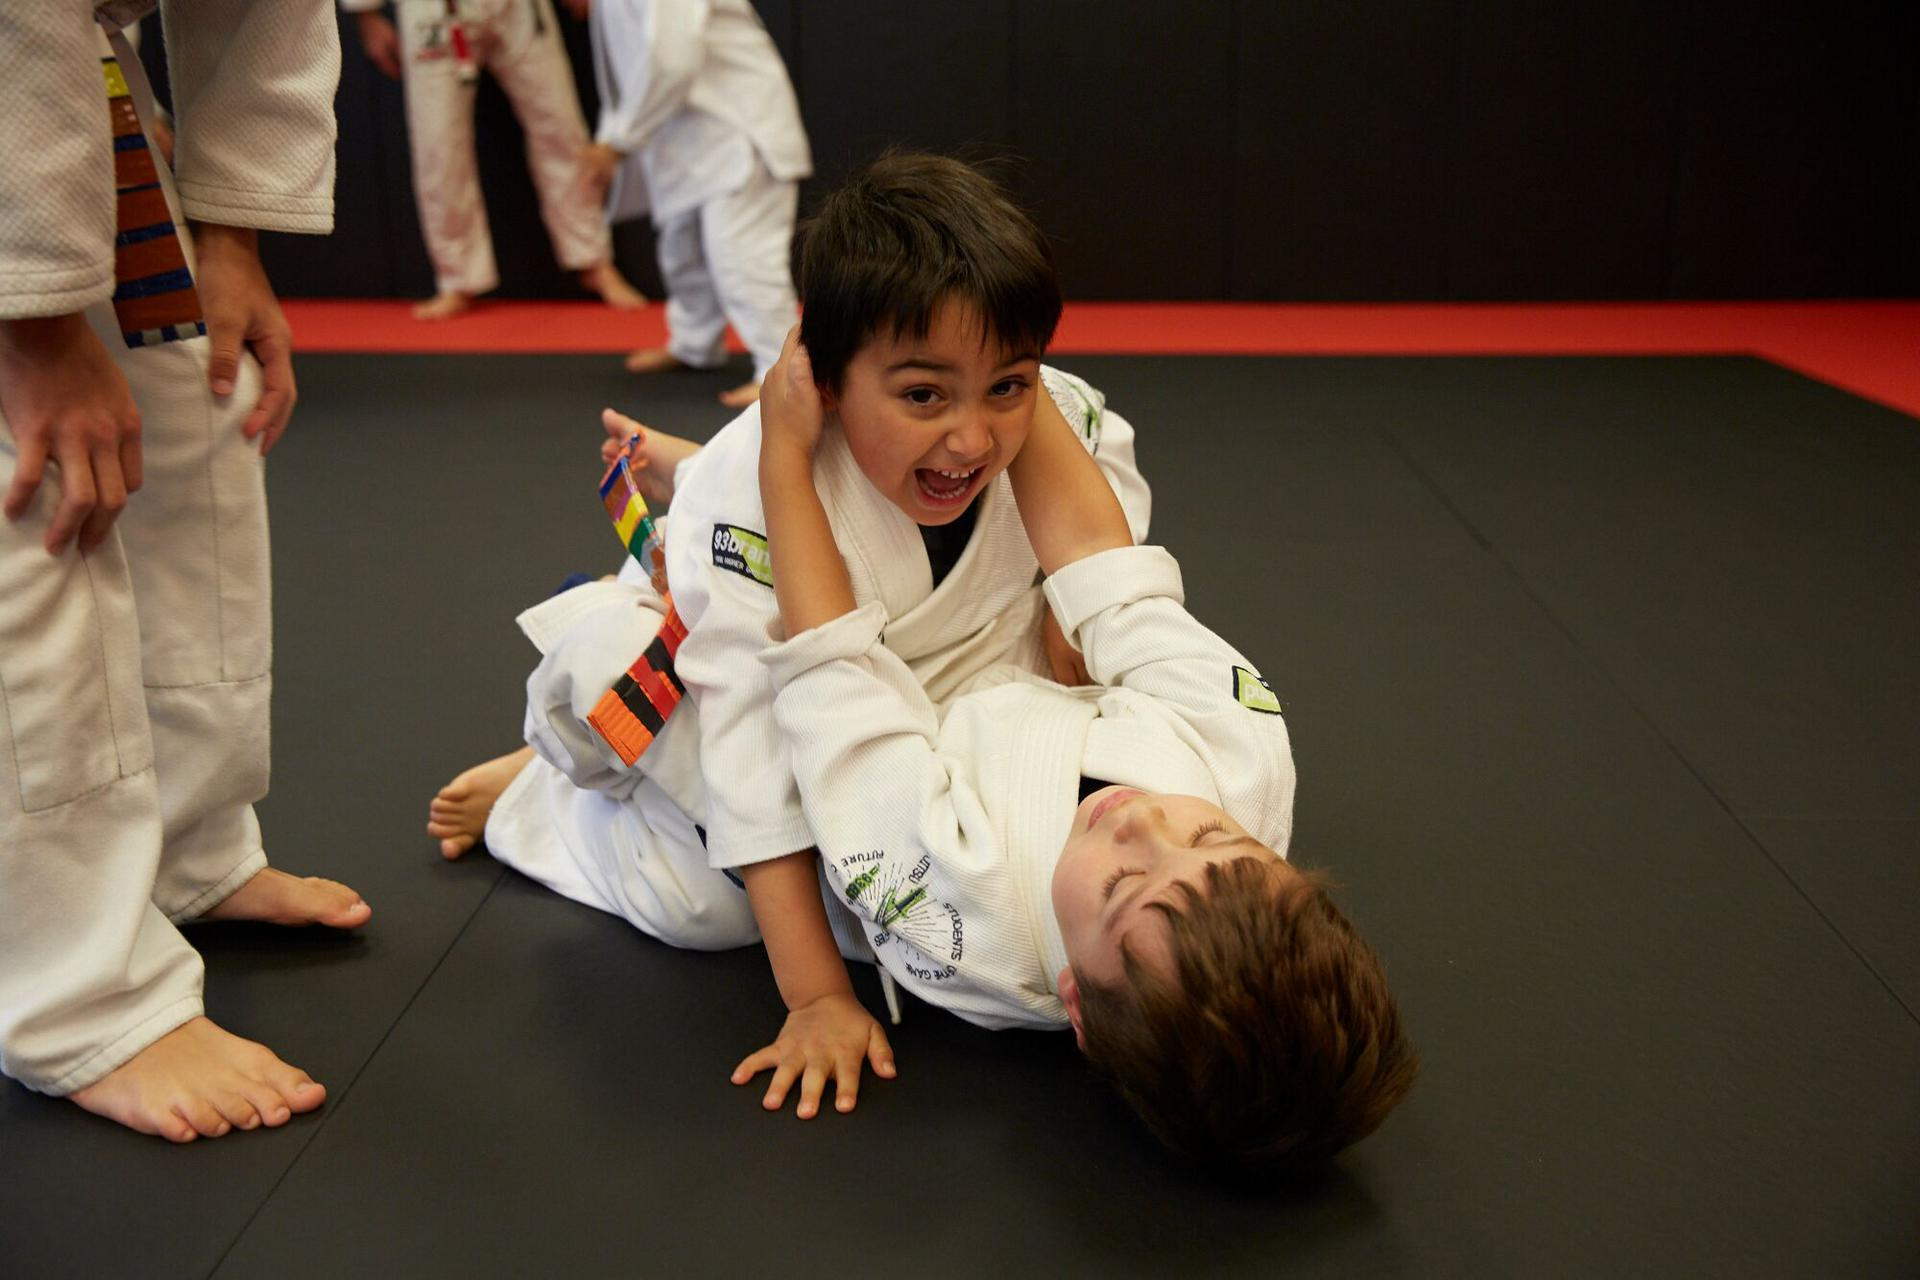 two 5 year old kids working on their bulletproofing and martial arts